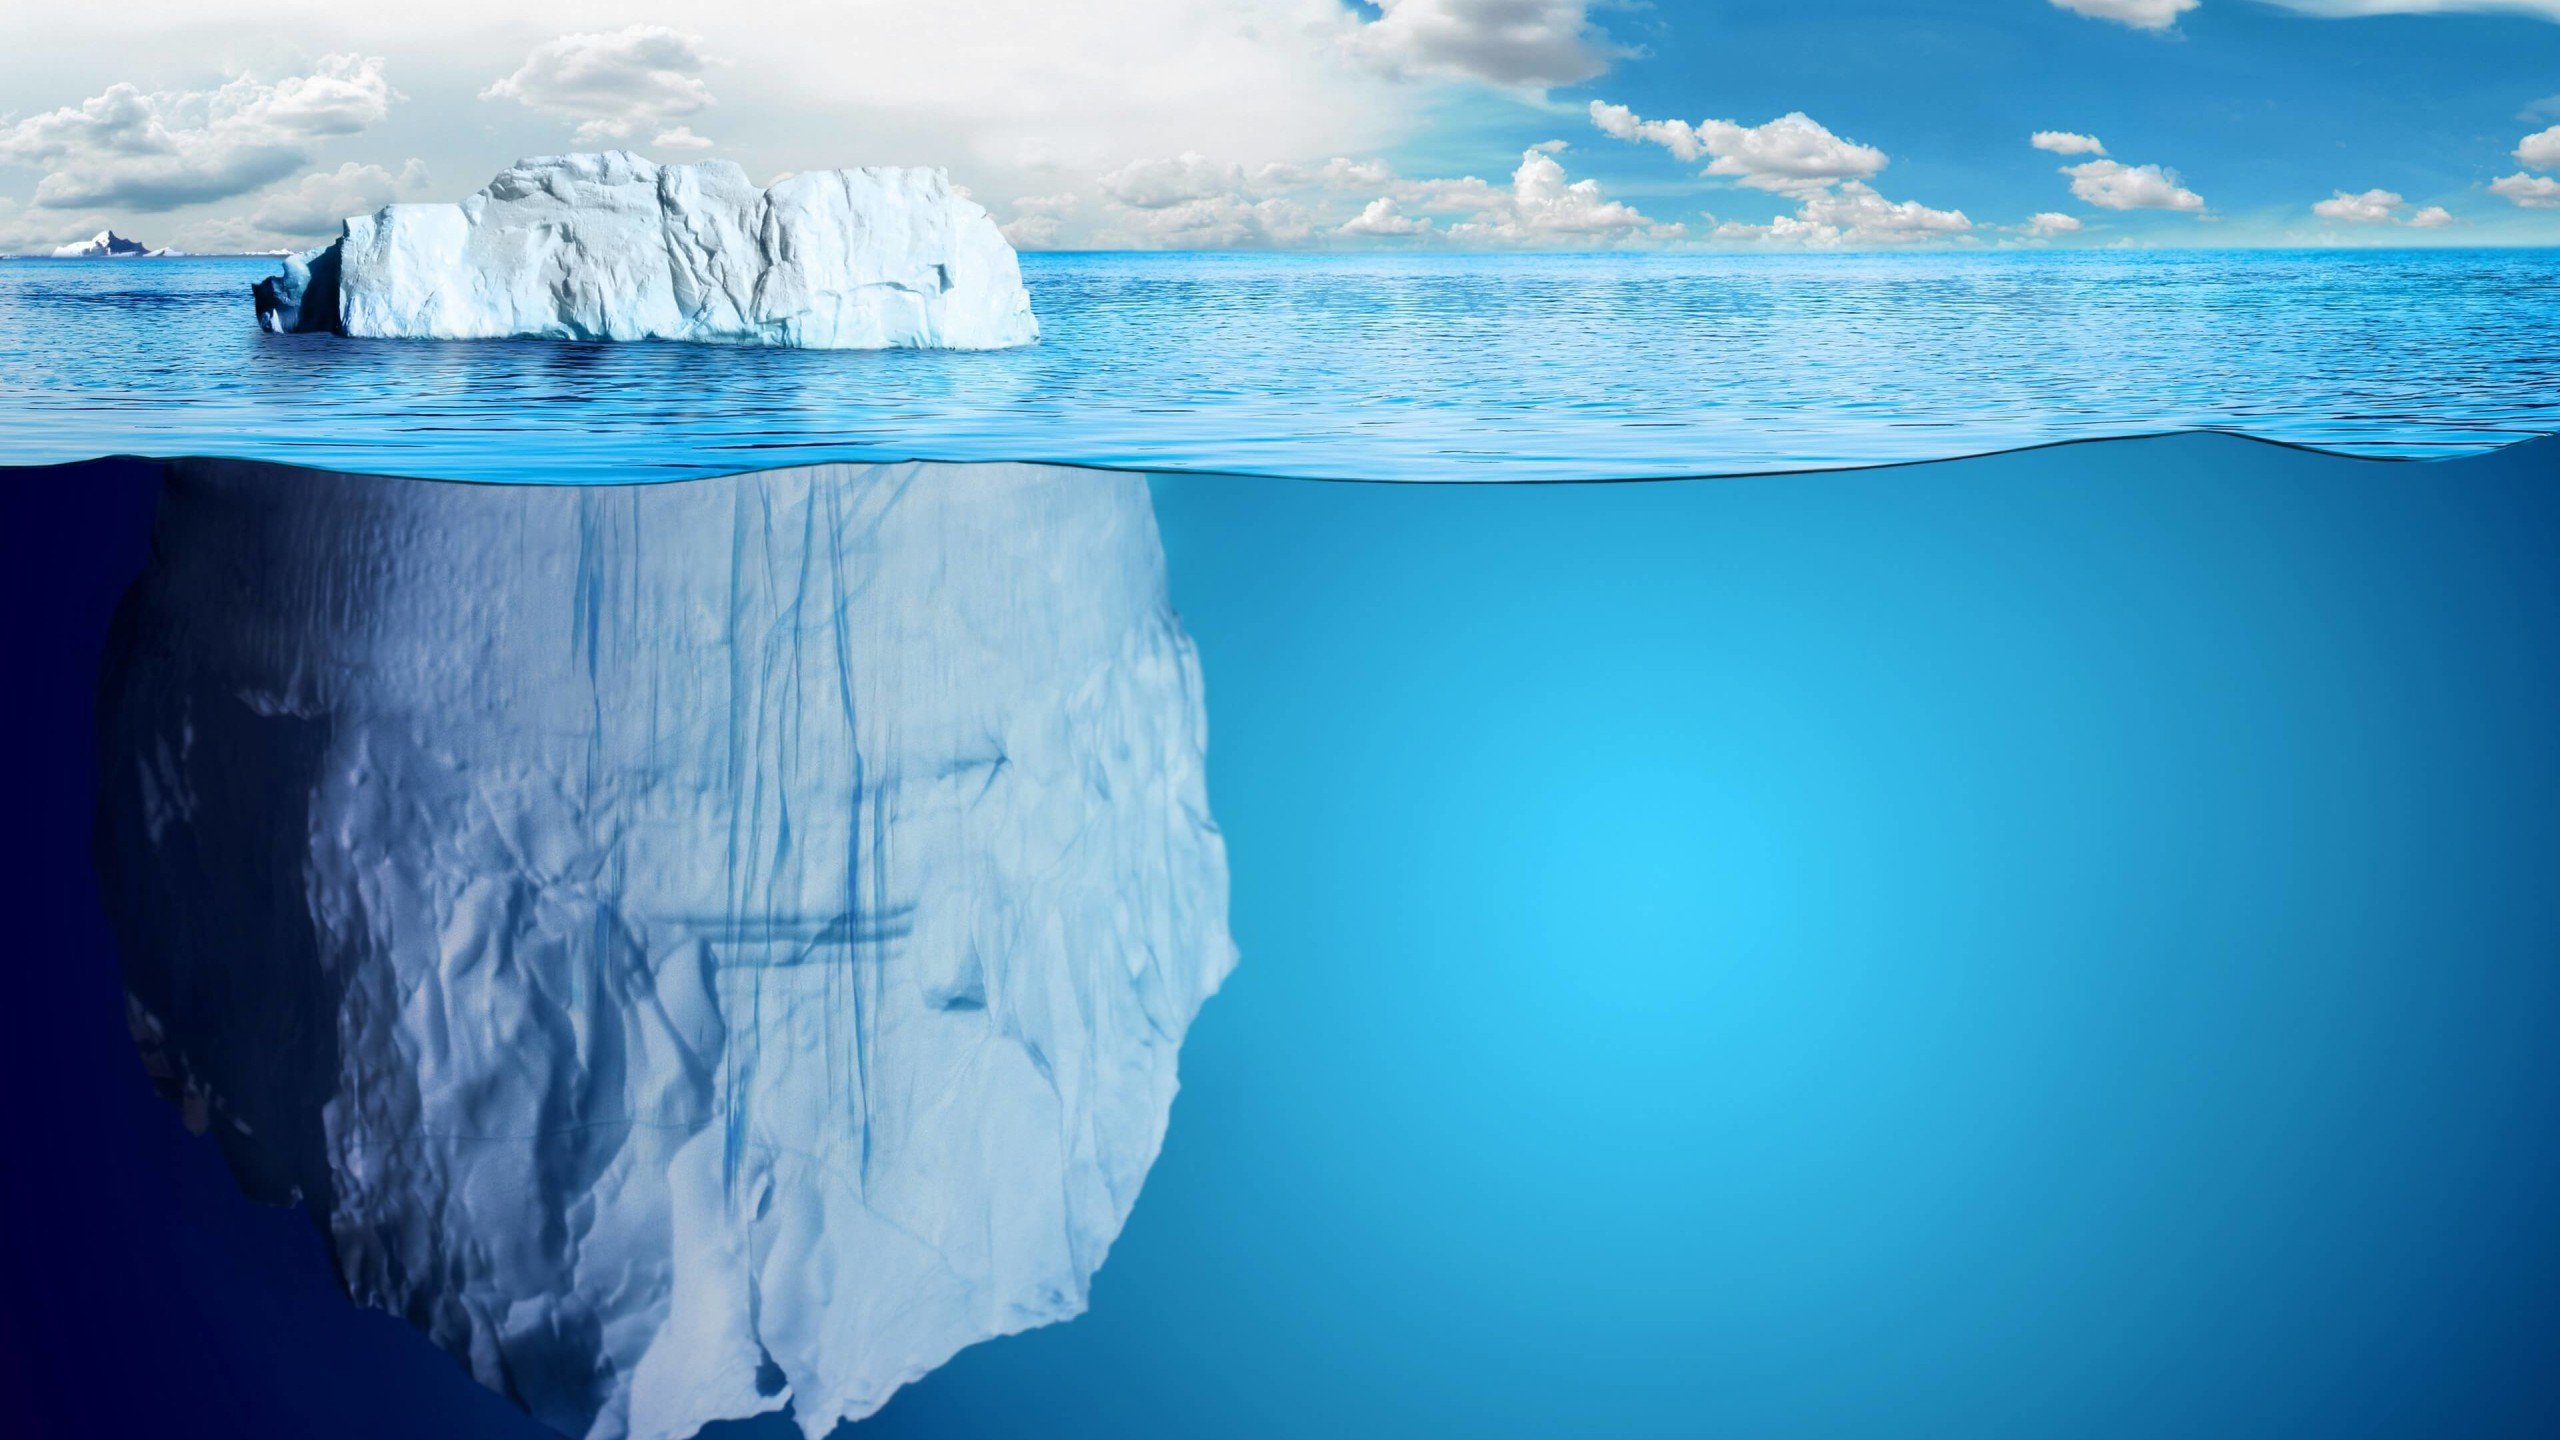 The invisible part of the iceberg Wallpaper for Social Media YouTube Channel Art